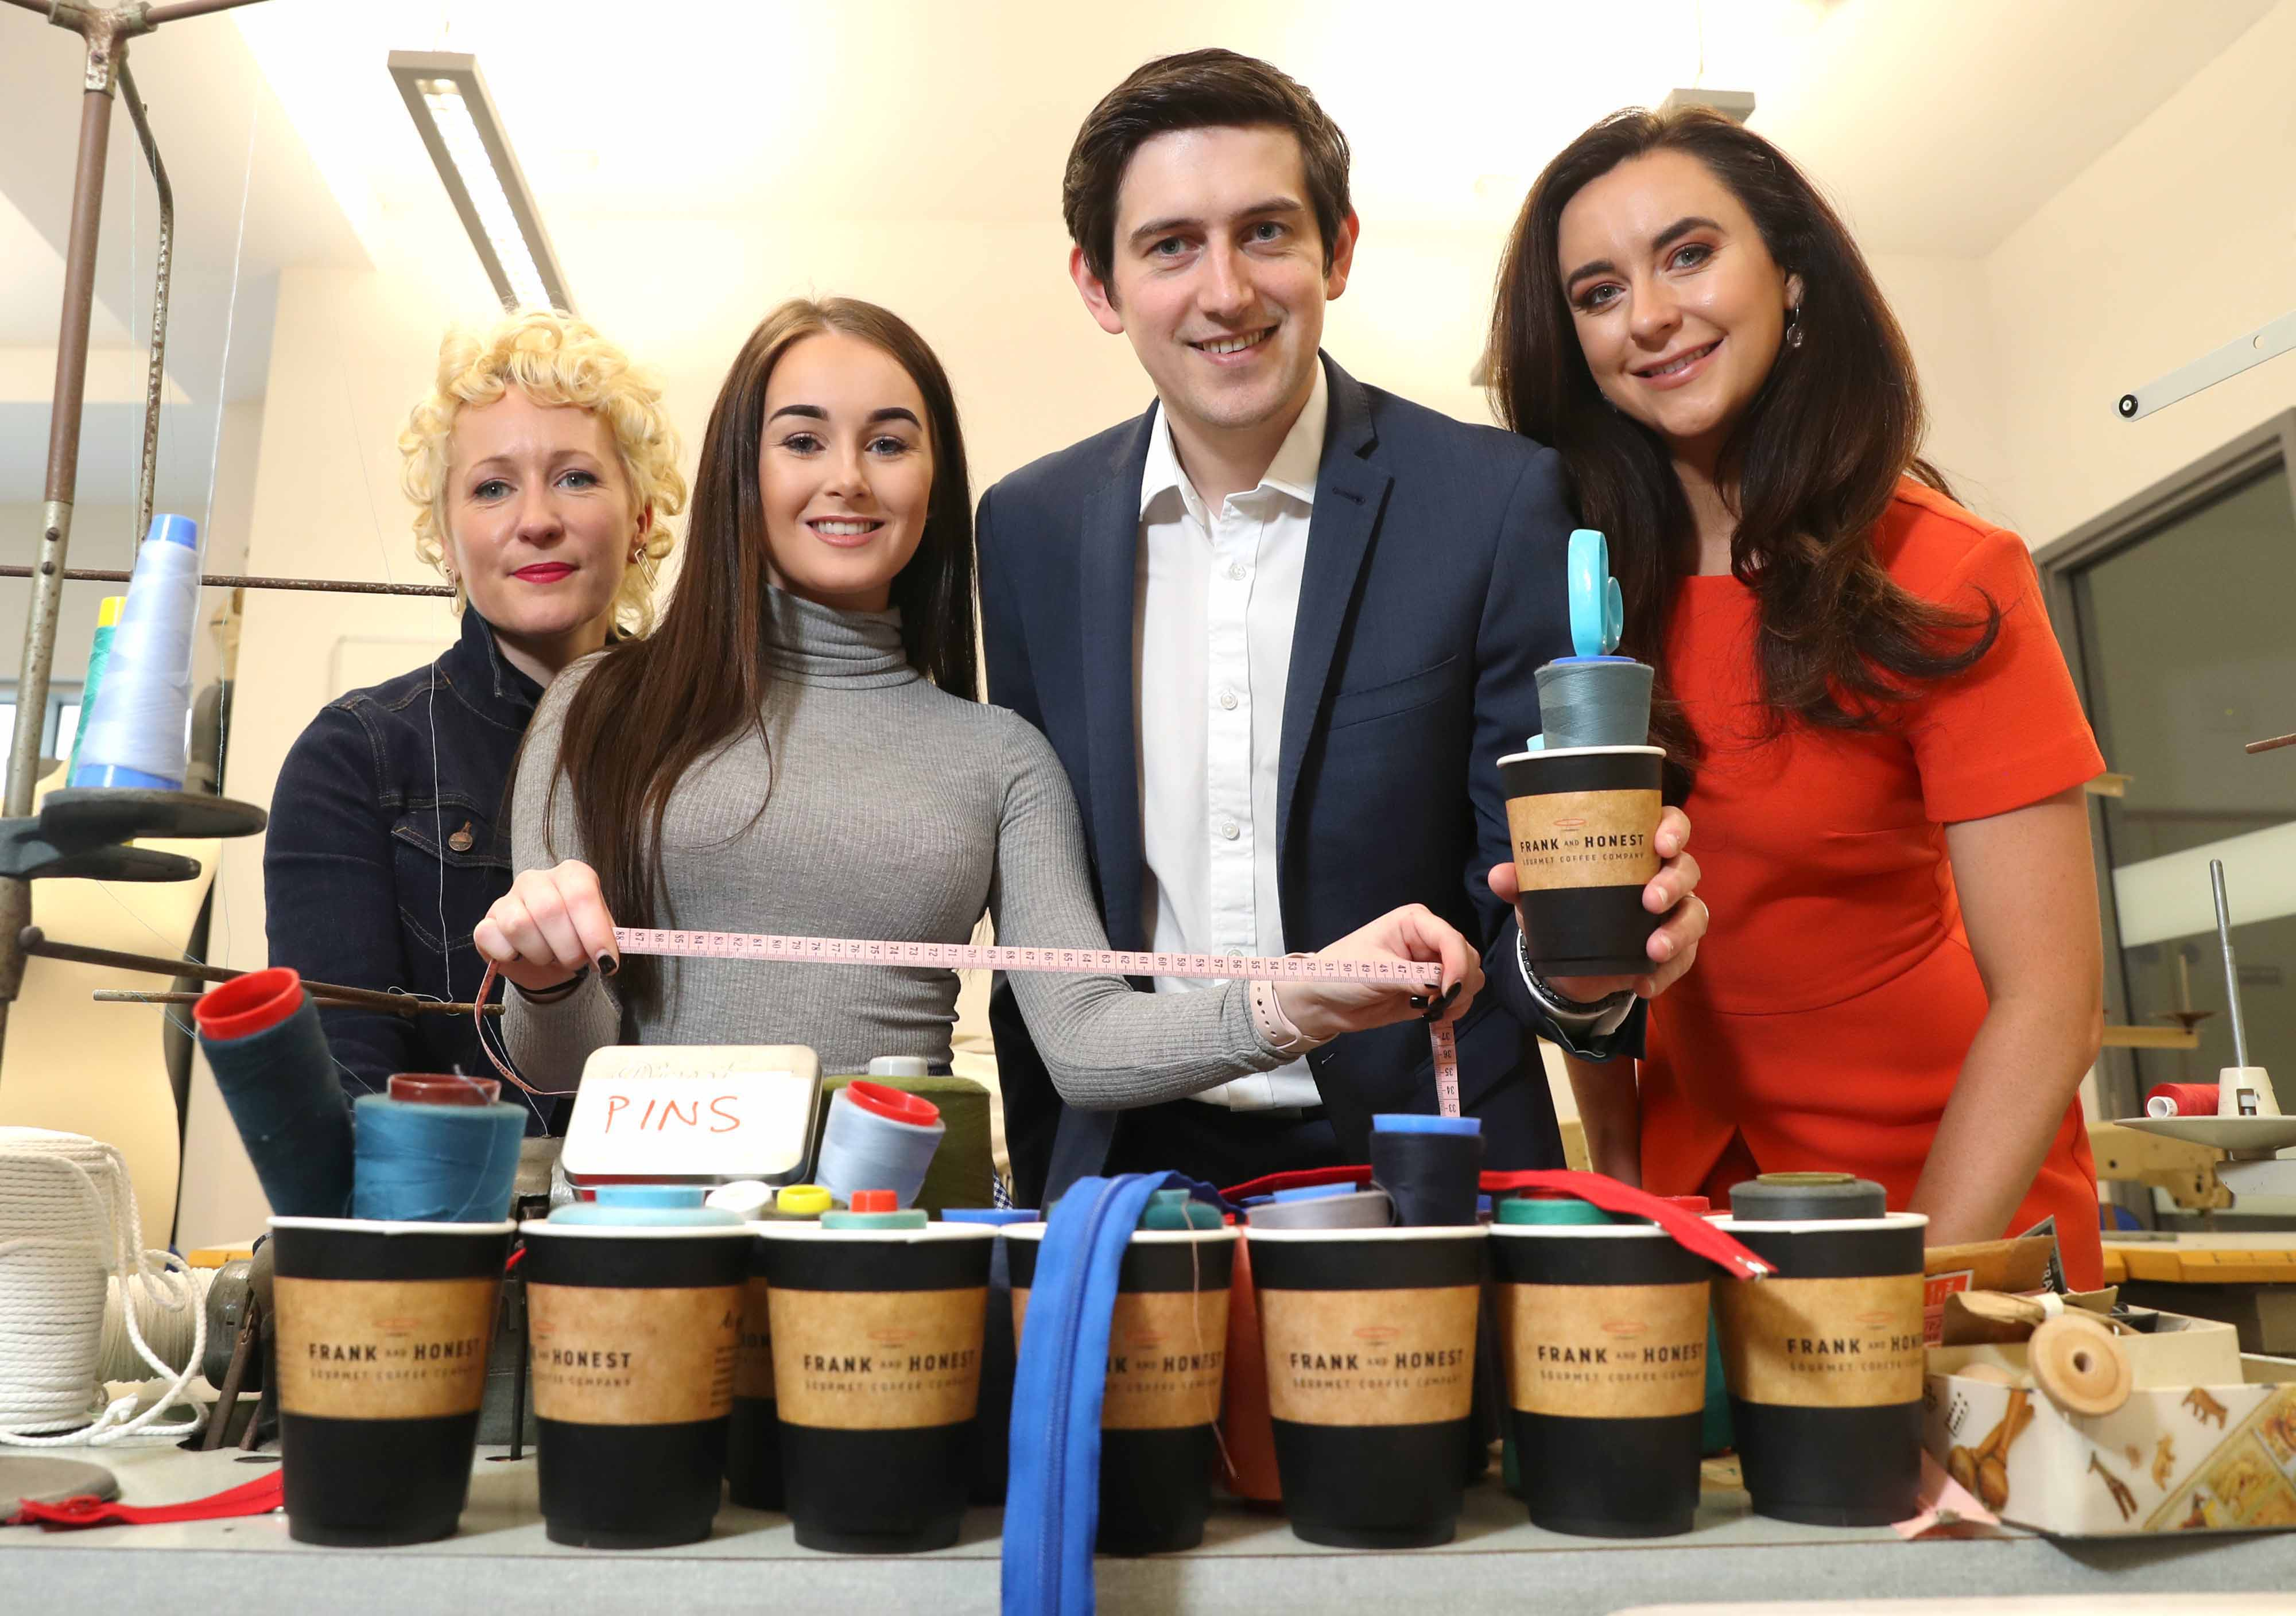 Frank And Honest Gets Fashionably Sustainable Centra